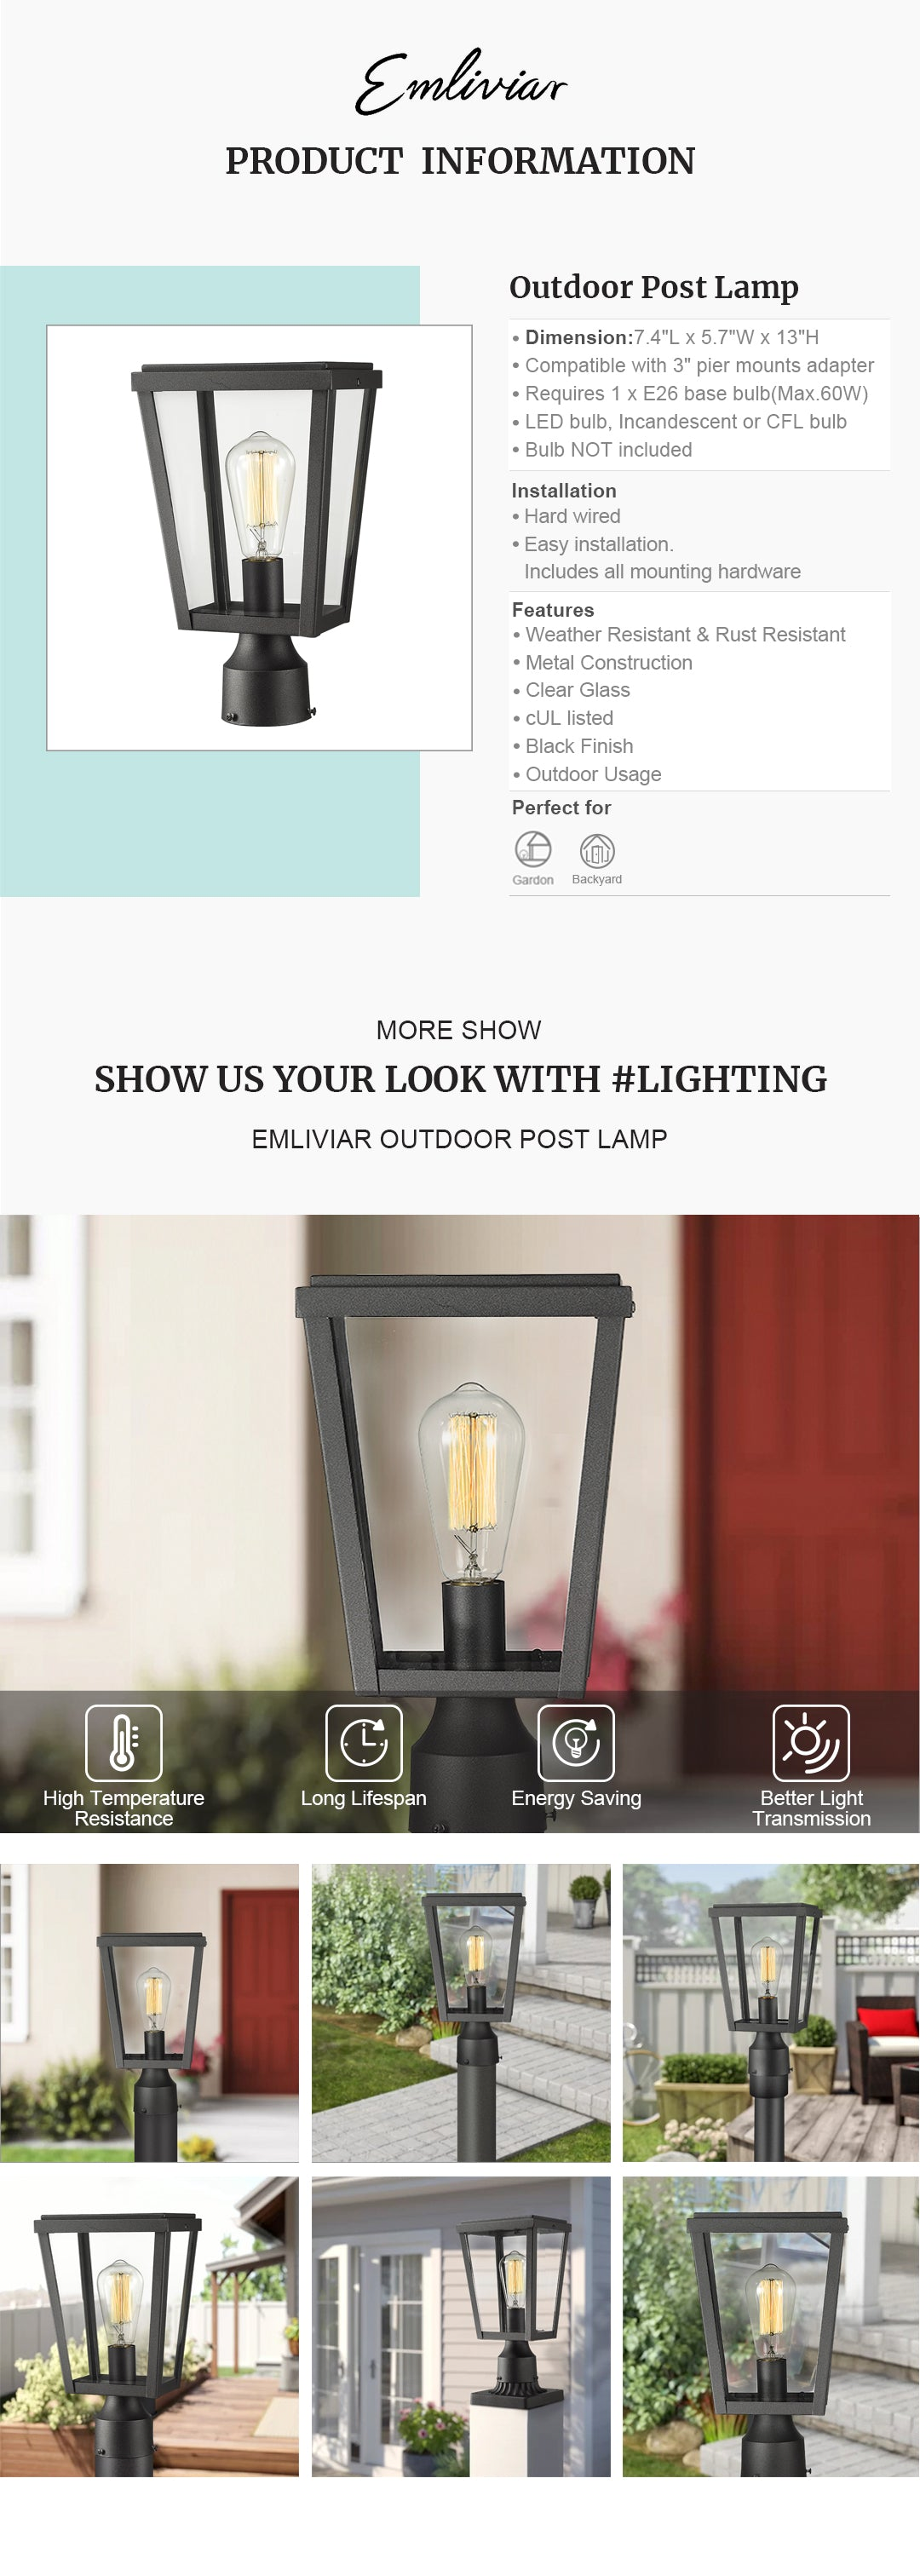 """Weather resistant and rust resistant, this pillar light features sturdy metal construction and clear glass shade, suitable for wet locations The outdoor post light can be mounted on a pillar or column, or fit it with a 3"""" diameter mounting base(Not included). Easy installation. Includes all mounting hardware Hard wired. Requires 1 x E26 base bulb(Max.60W). Bulb NOT included. Compatible with LED bulb, Incandescent or CFL bulb cUL Listed with a one-year warranty. This post mount light is perfect for garden, backyard, courtyard, patio, balcony, porch, pathway or entryway. Dimension: 7.4"""" x 5.7"""" x 13""""(L x W x H); Compatible with 3"""" pier mounts adapter(Sold Separately)"""